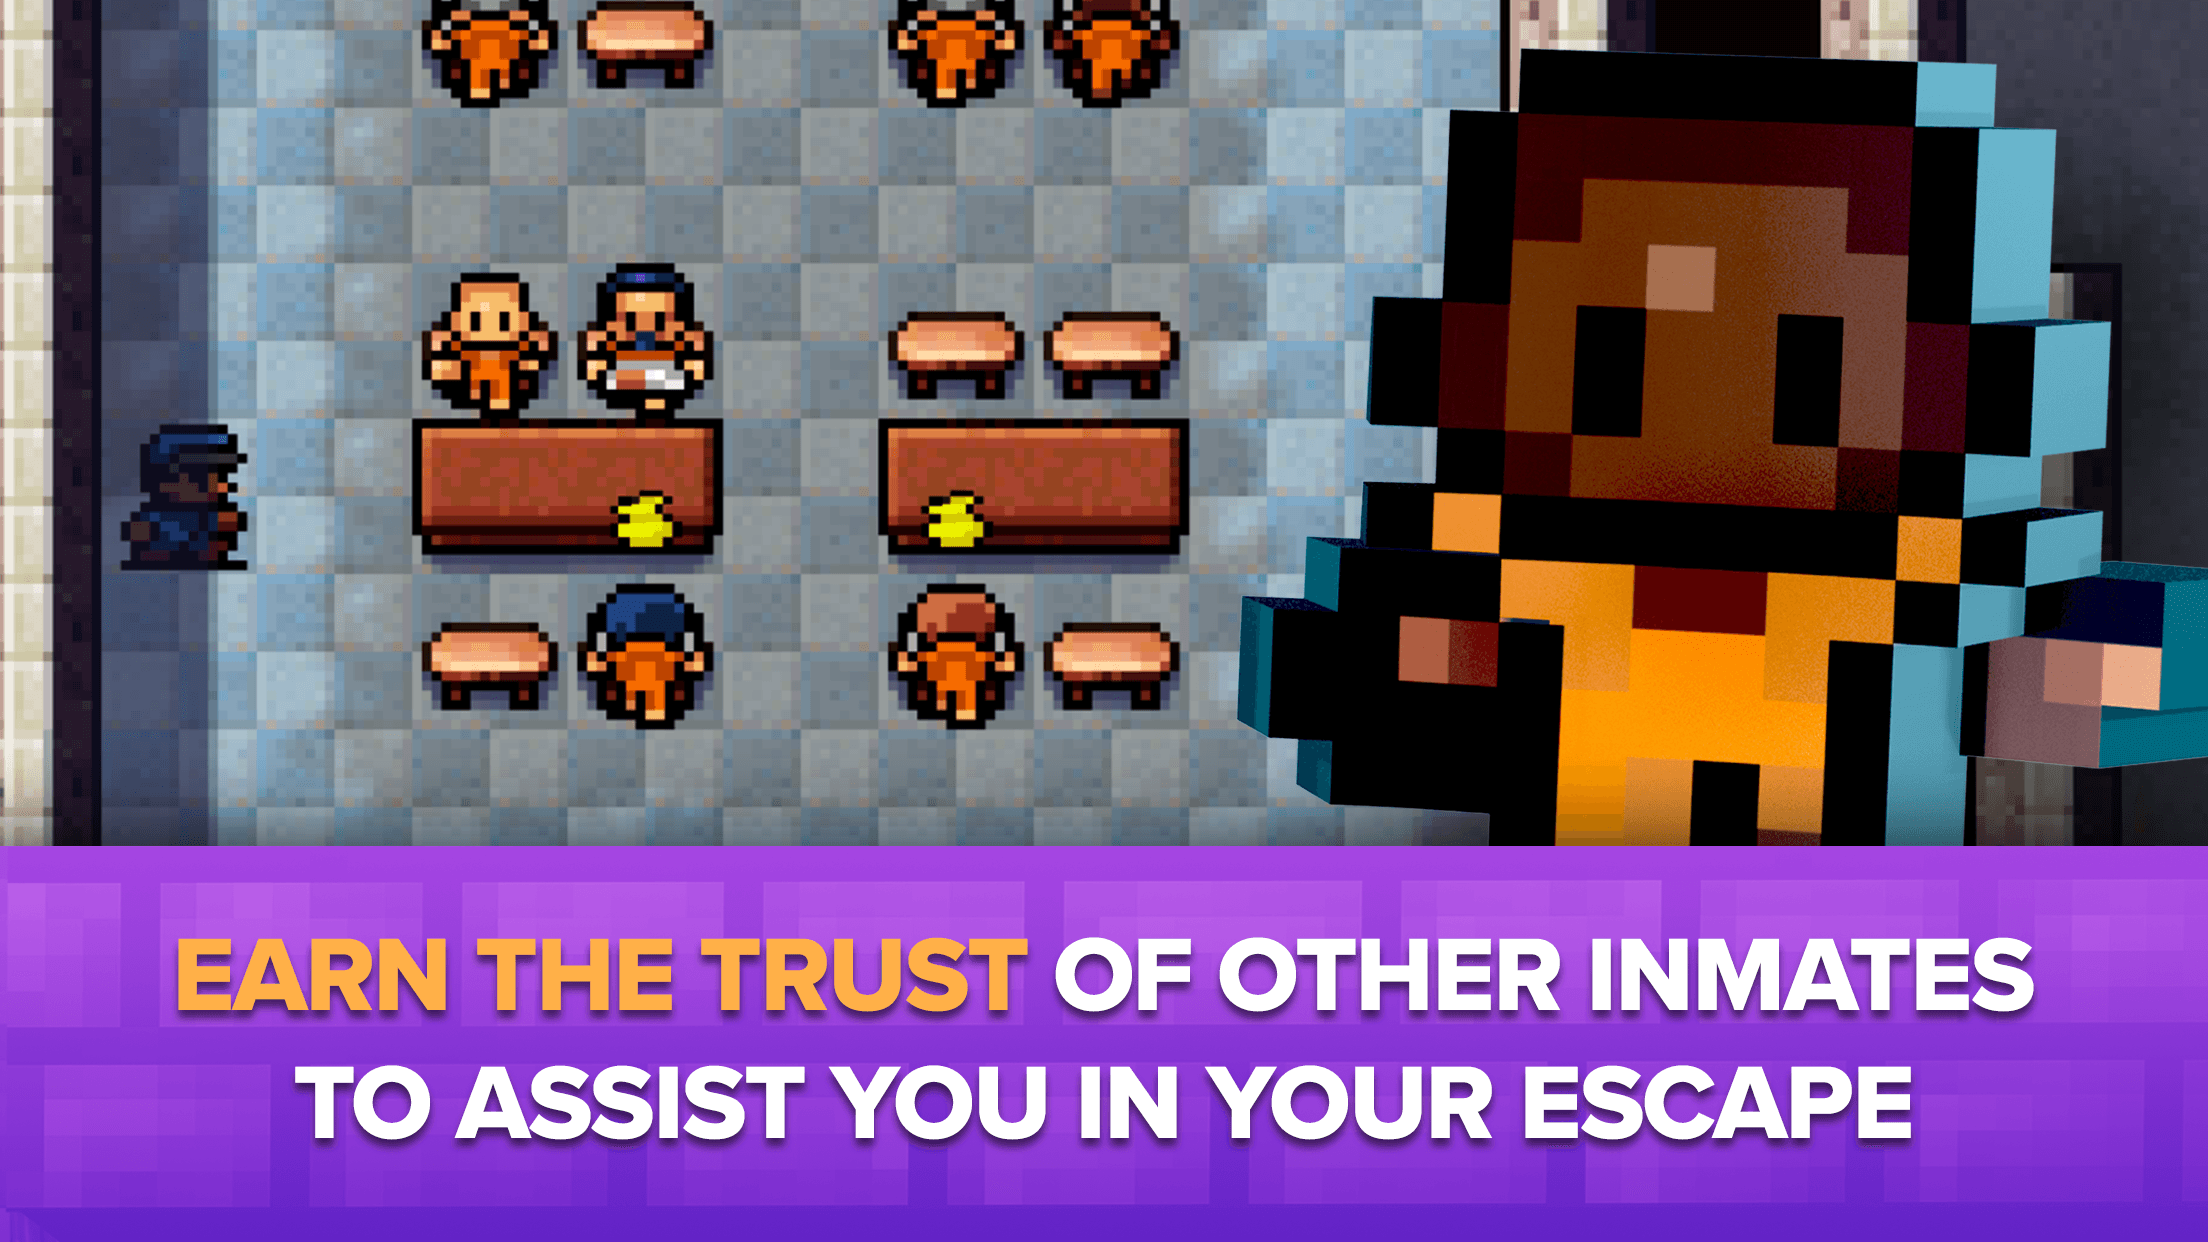 The escapist 2 free download mac full version free